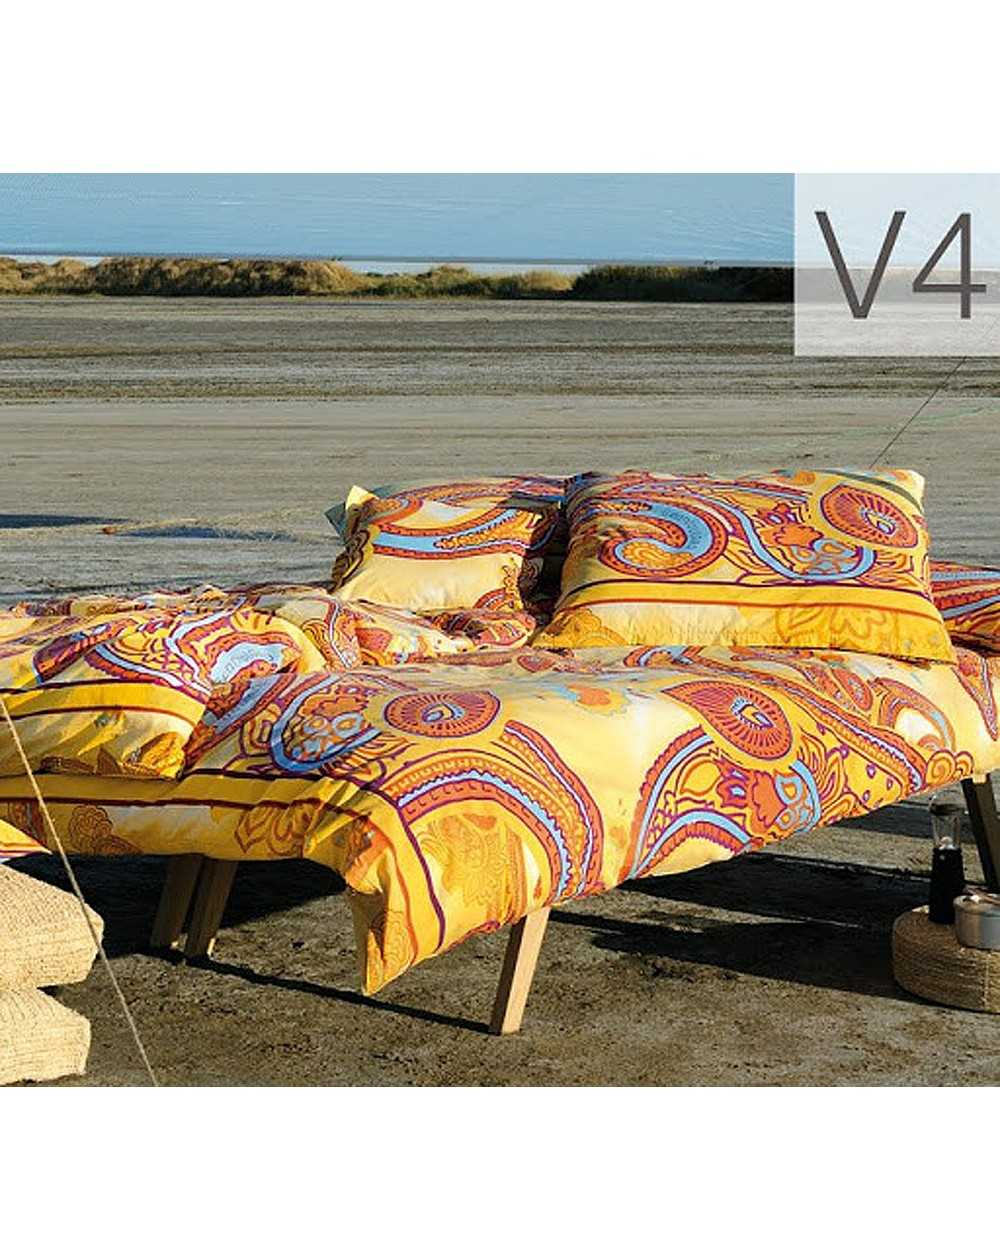 Copripiumino Versace.Duvet Set A Fitted Sheet Duvet Cover And Two Pillow Cases